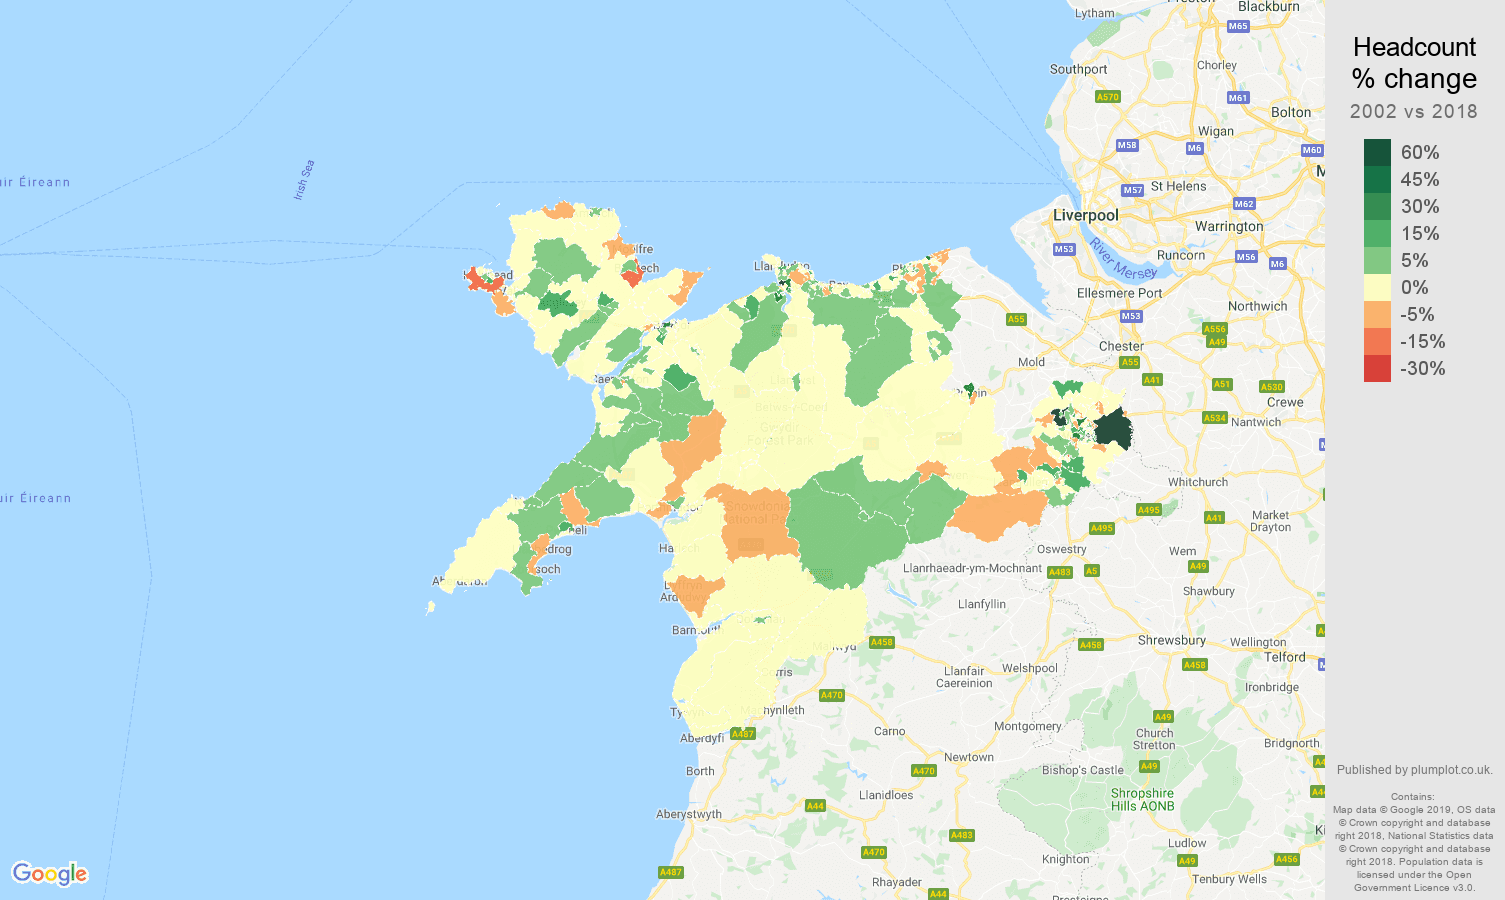 Llandudno headcount change map